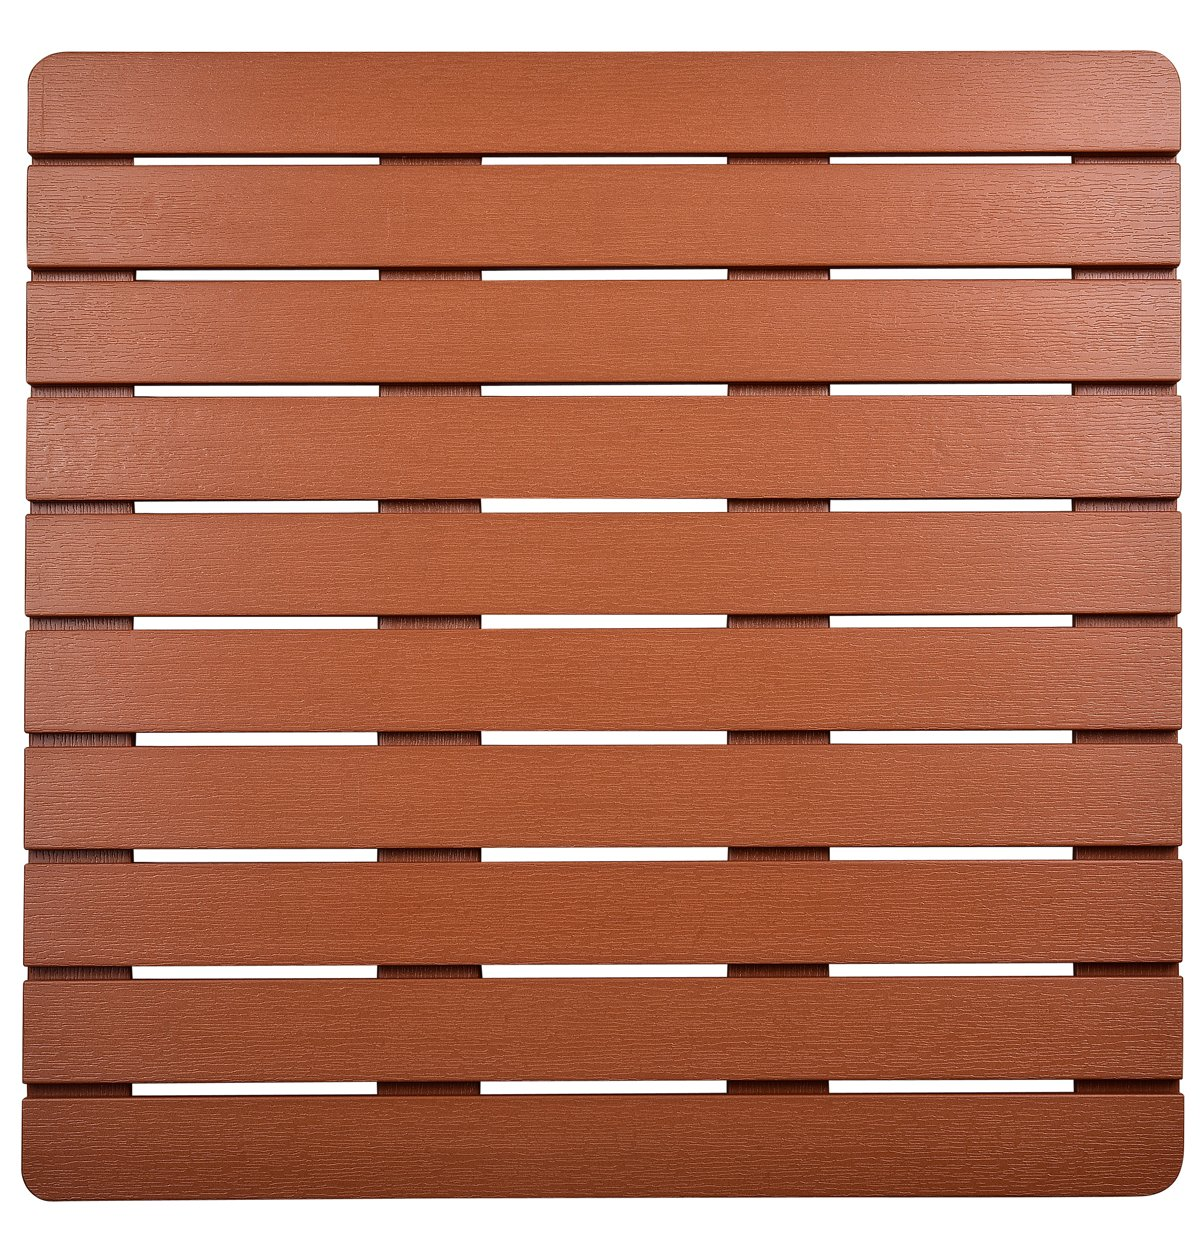 ifrmmy Premium Large Bath Tub Shower Floor Mat made of PVC Wood- Non Slip and Mold Resistant Bathroom mat with Drain Hole - 21.8'' x 21.8'' (Teak color)